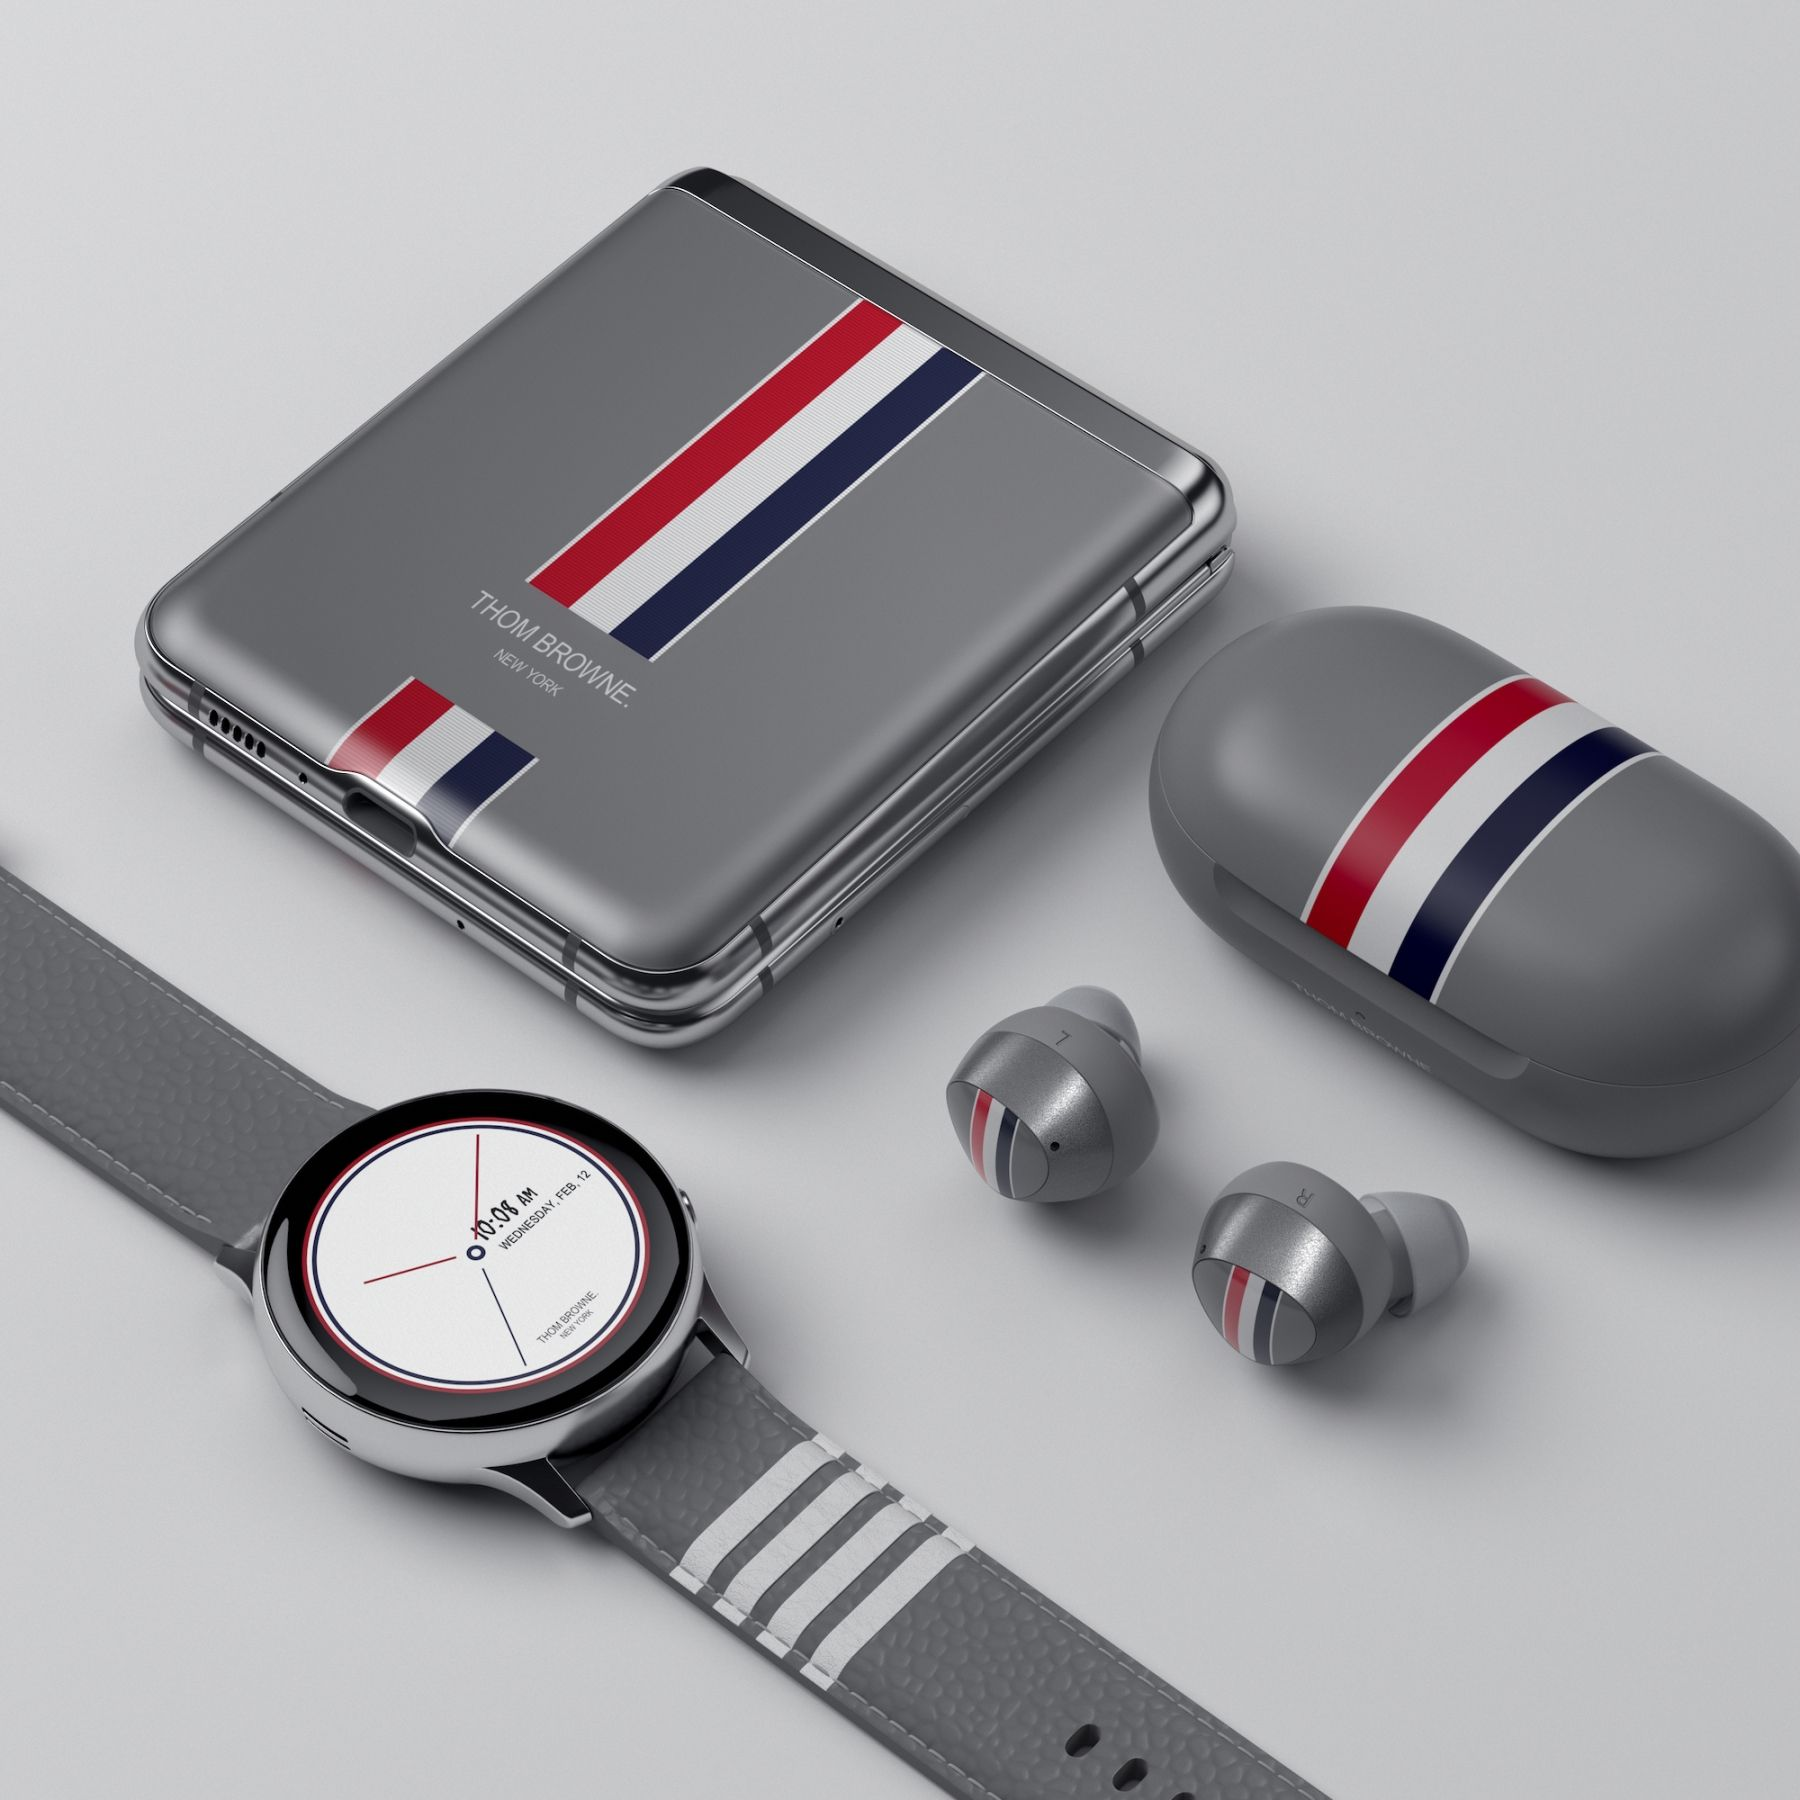 Samsung Announces The Galaxy Z Flip Thom Browne Edition Here Are All The Official Images Pricebaba Com Daily